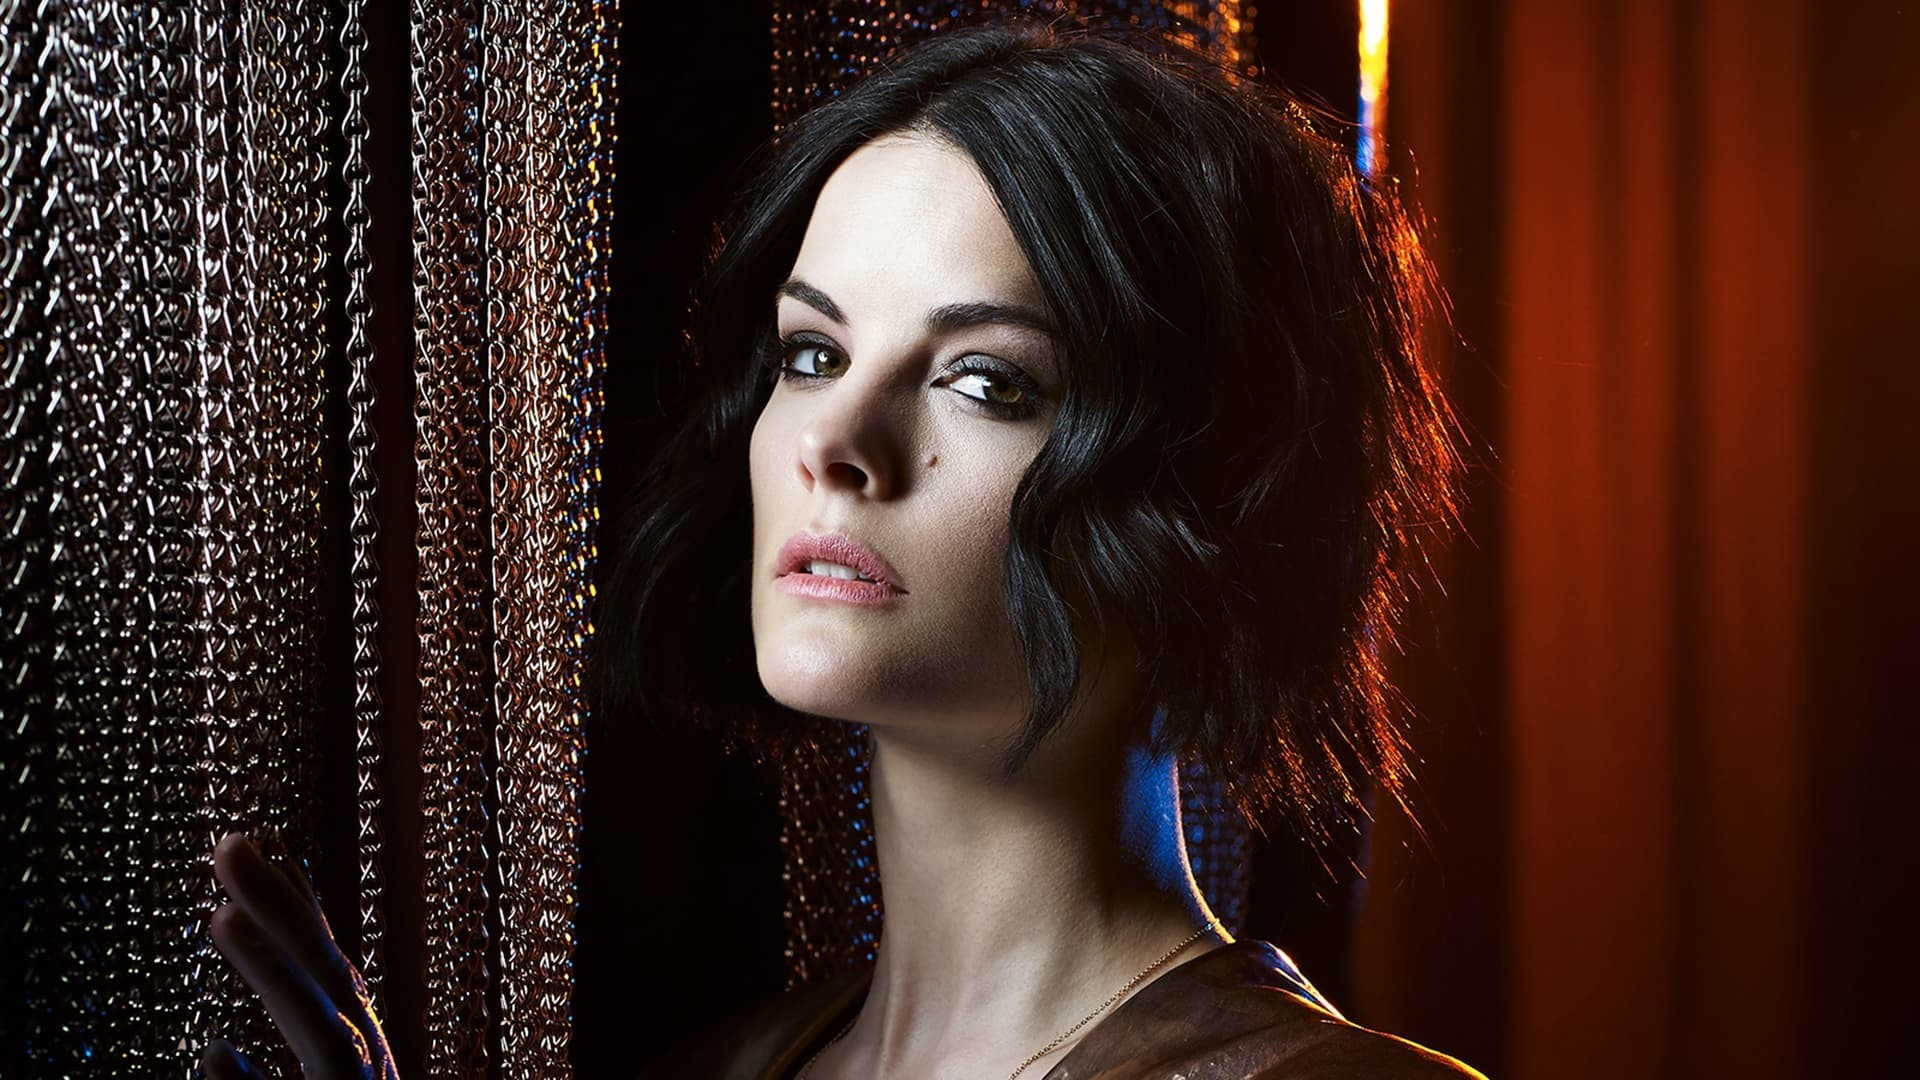 jaimie alexander hollywood actress model wallpapers